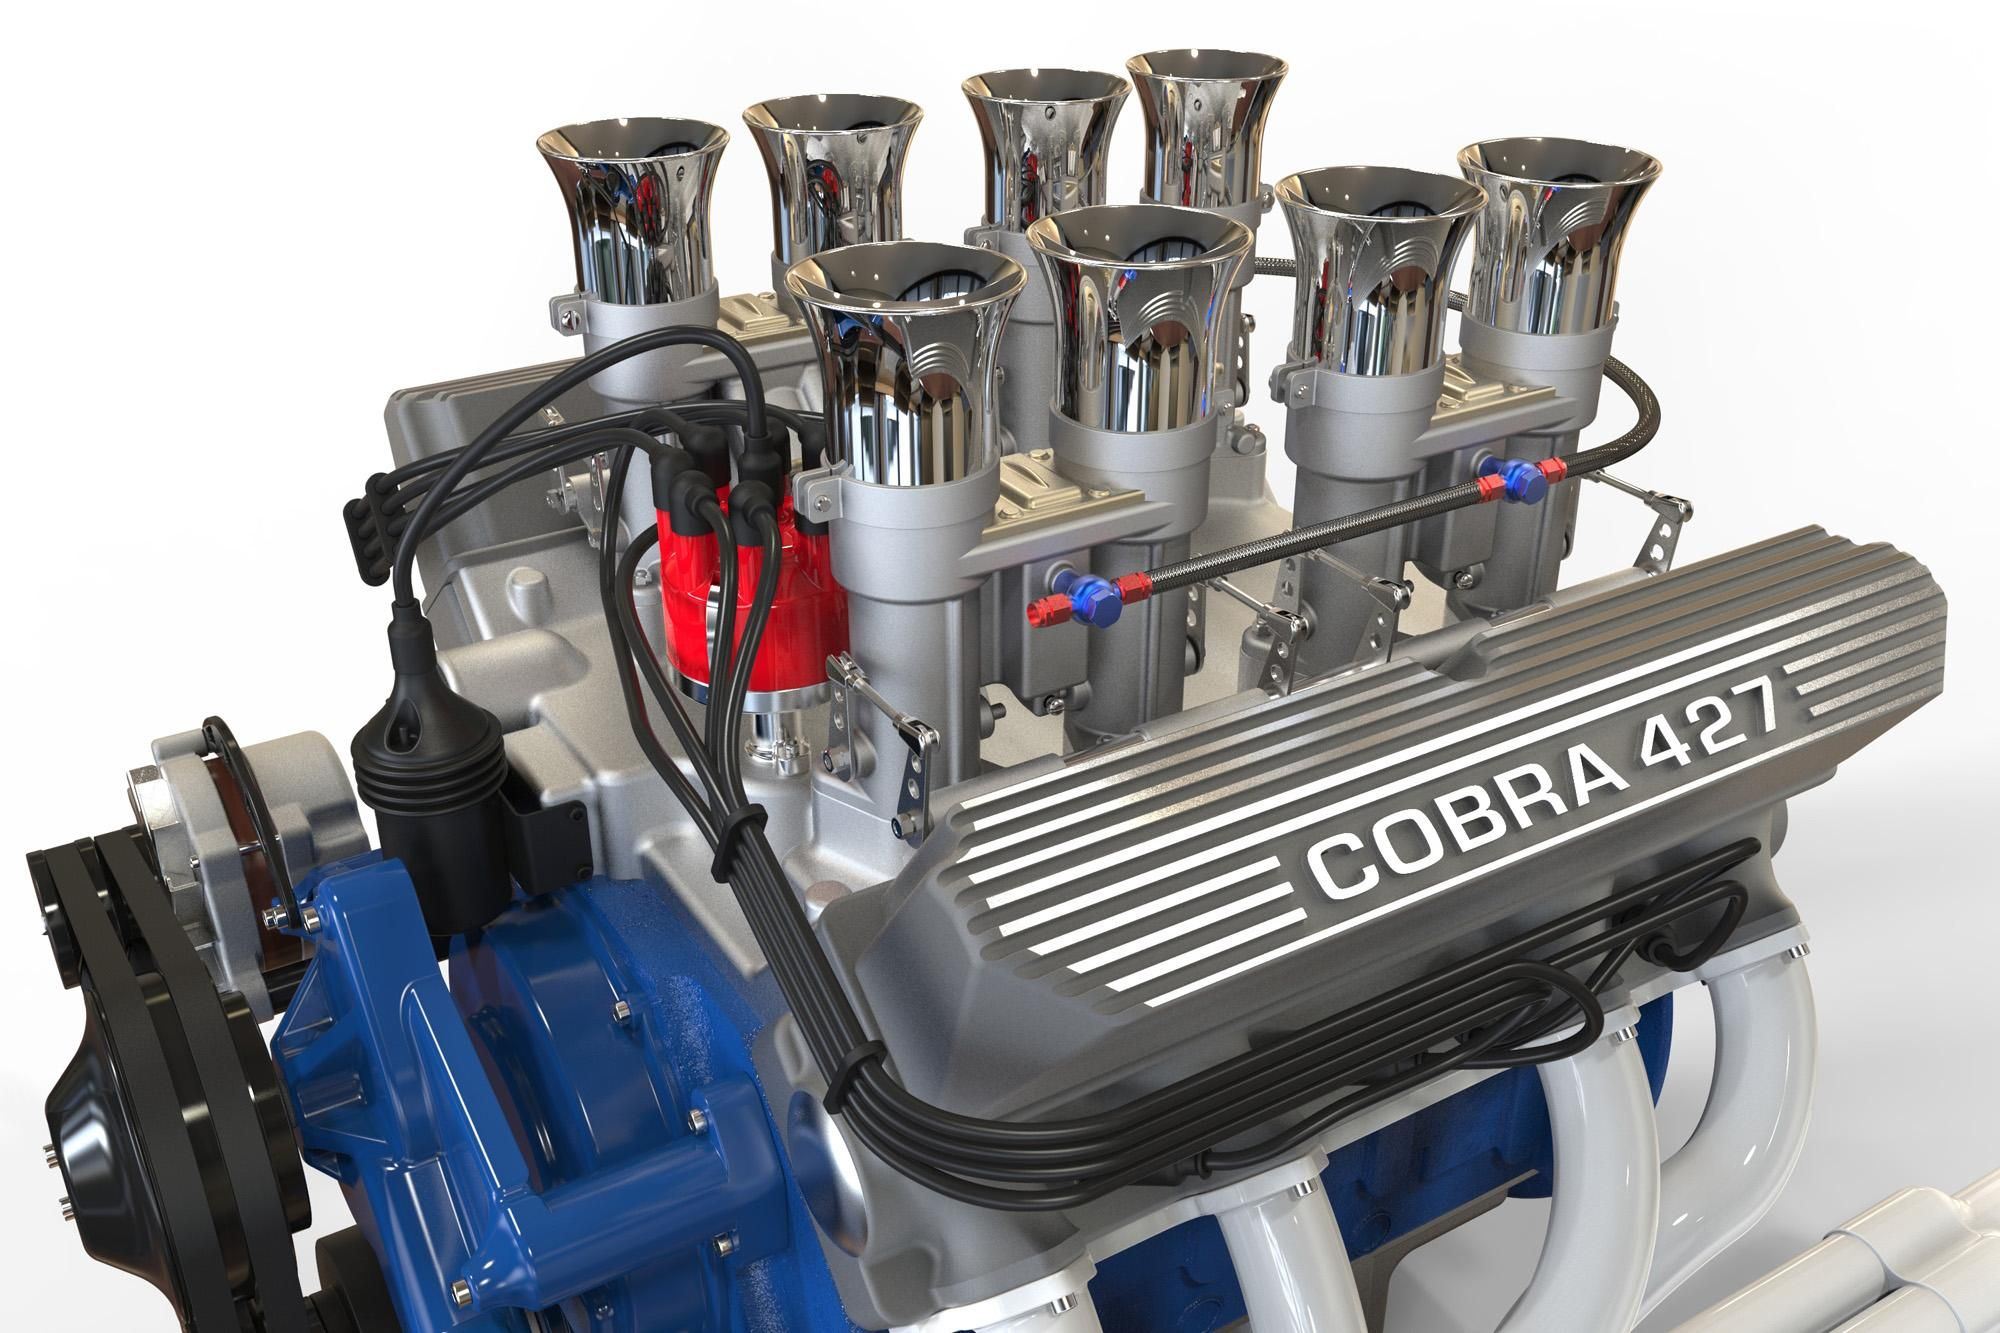 Shelby cobra 427 engine